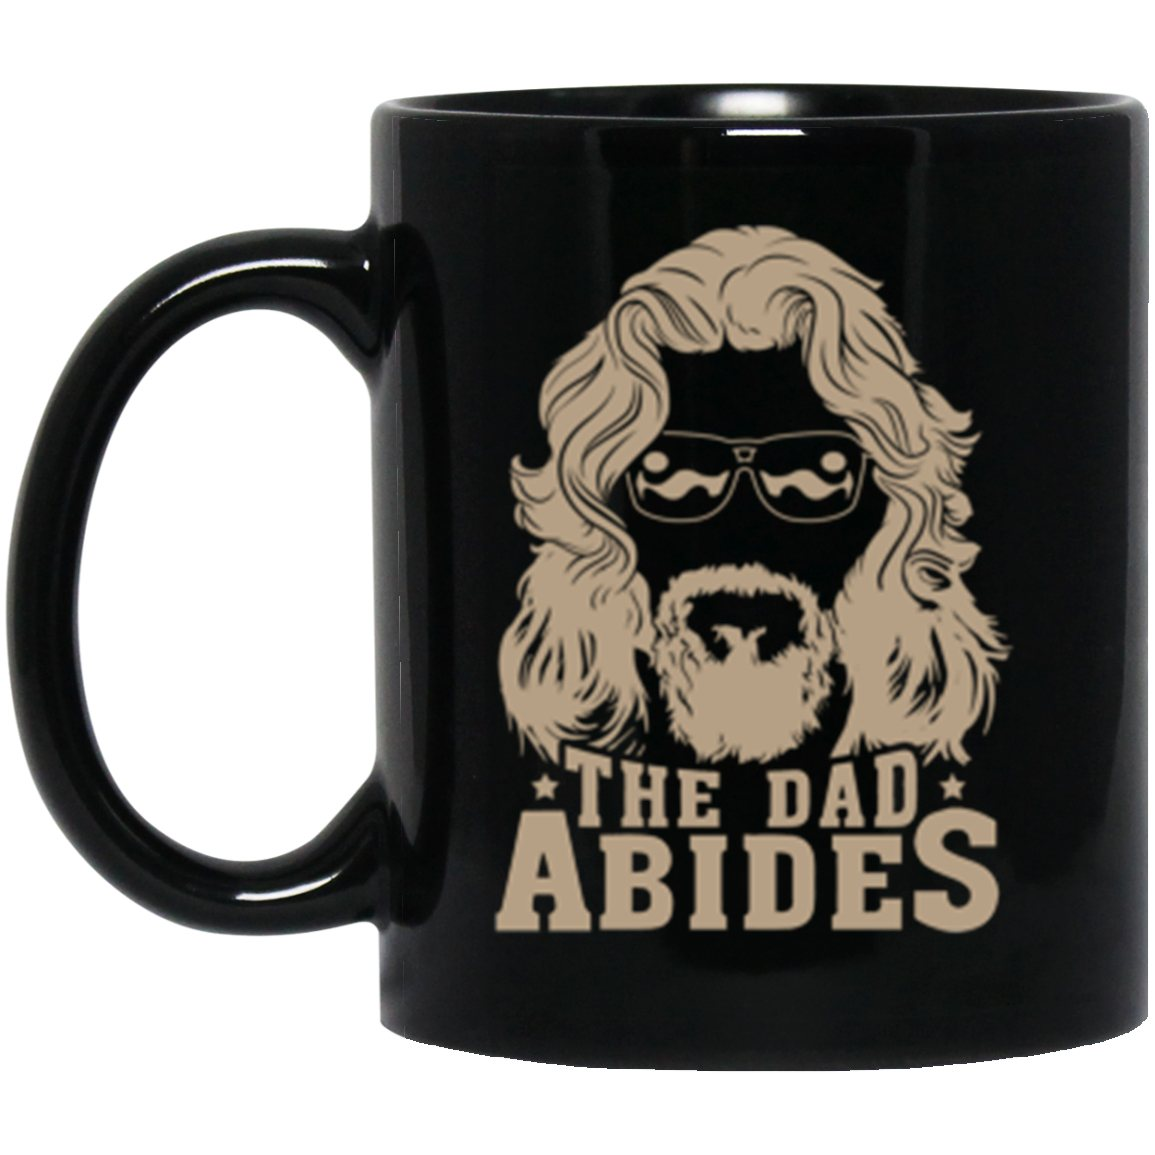 Drinkware - The Dad Abides Mug 11oz (2-sided)